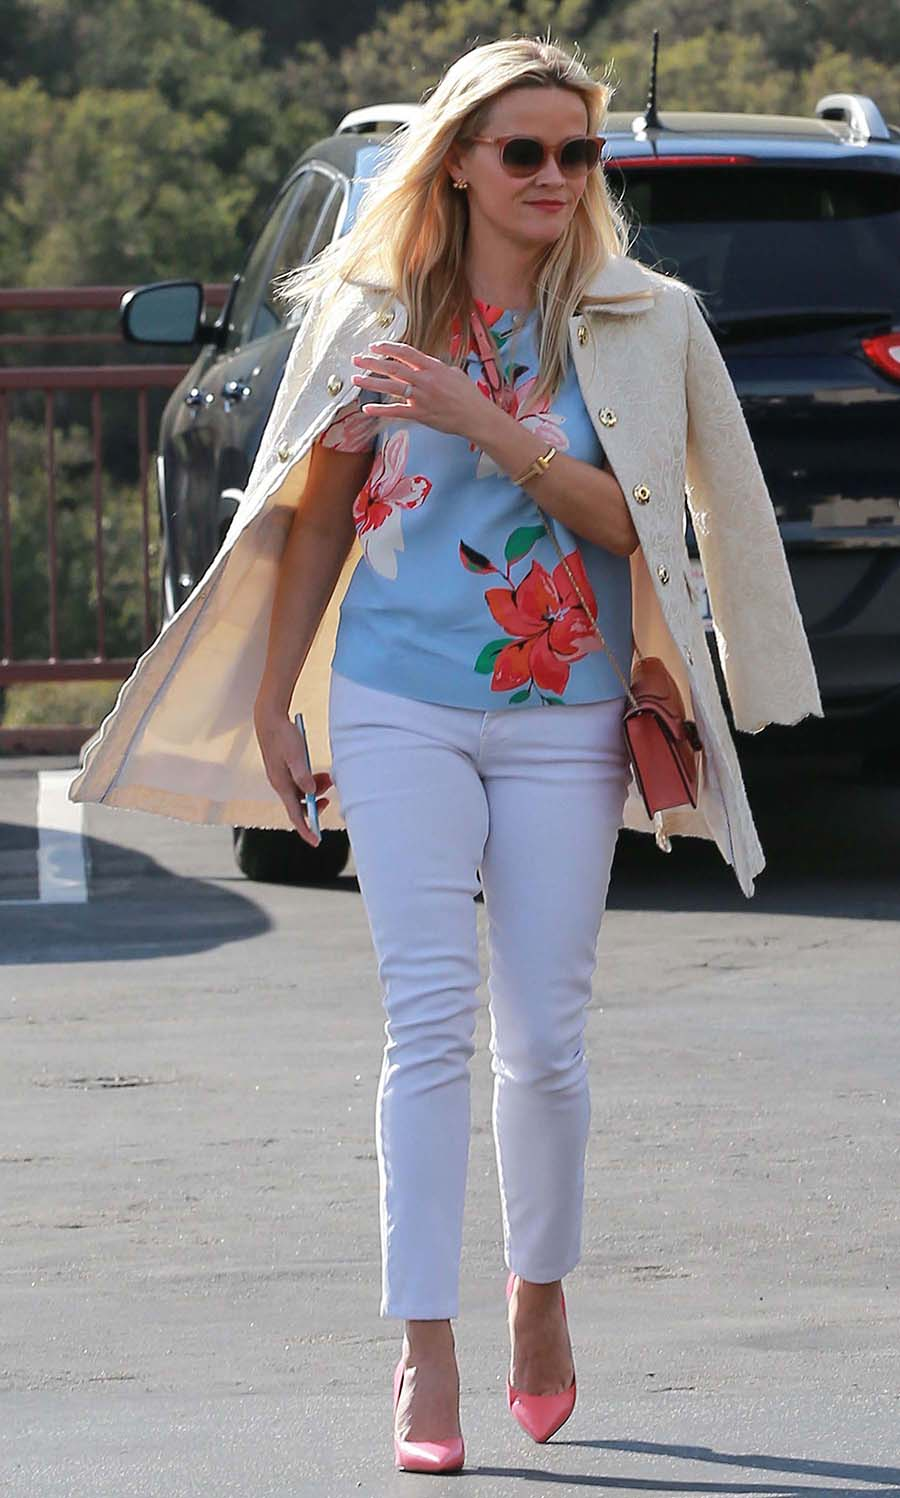 white-skinny-jeans-blue-light-top-floral-print-pink-shoe-pumps-white-jacket-coat-pink-bag-sun-reesewitherspoon-howtowear-style-spring-summer-blonde-lunch.jpg